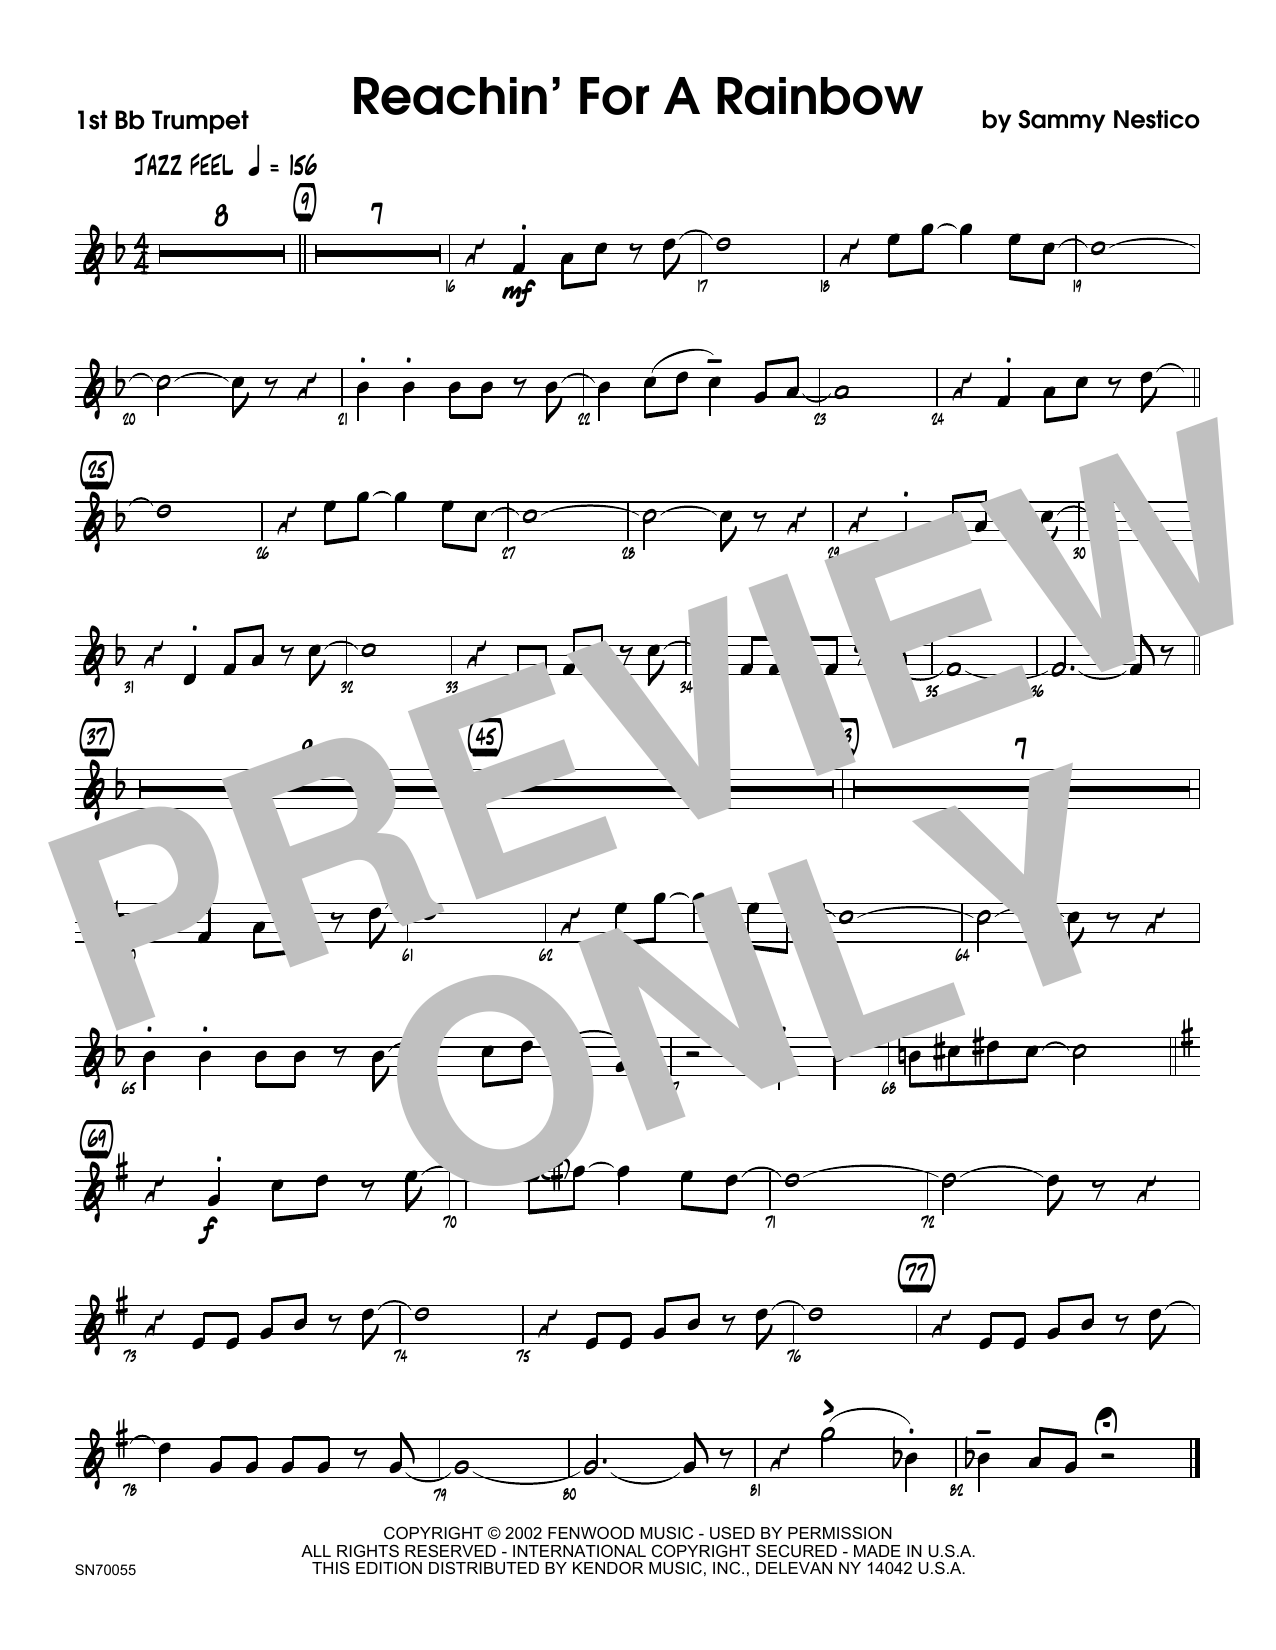 Reachin' For A Rainbow - 1st Bb Trumpet Sheet Music